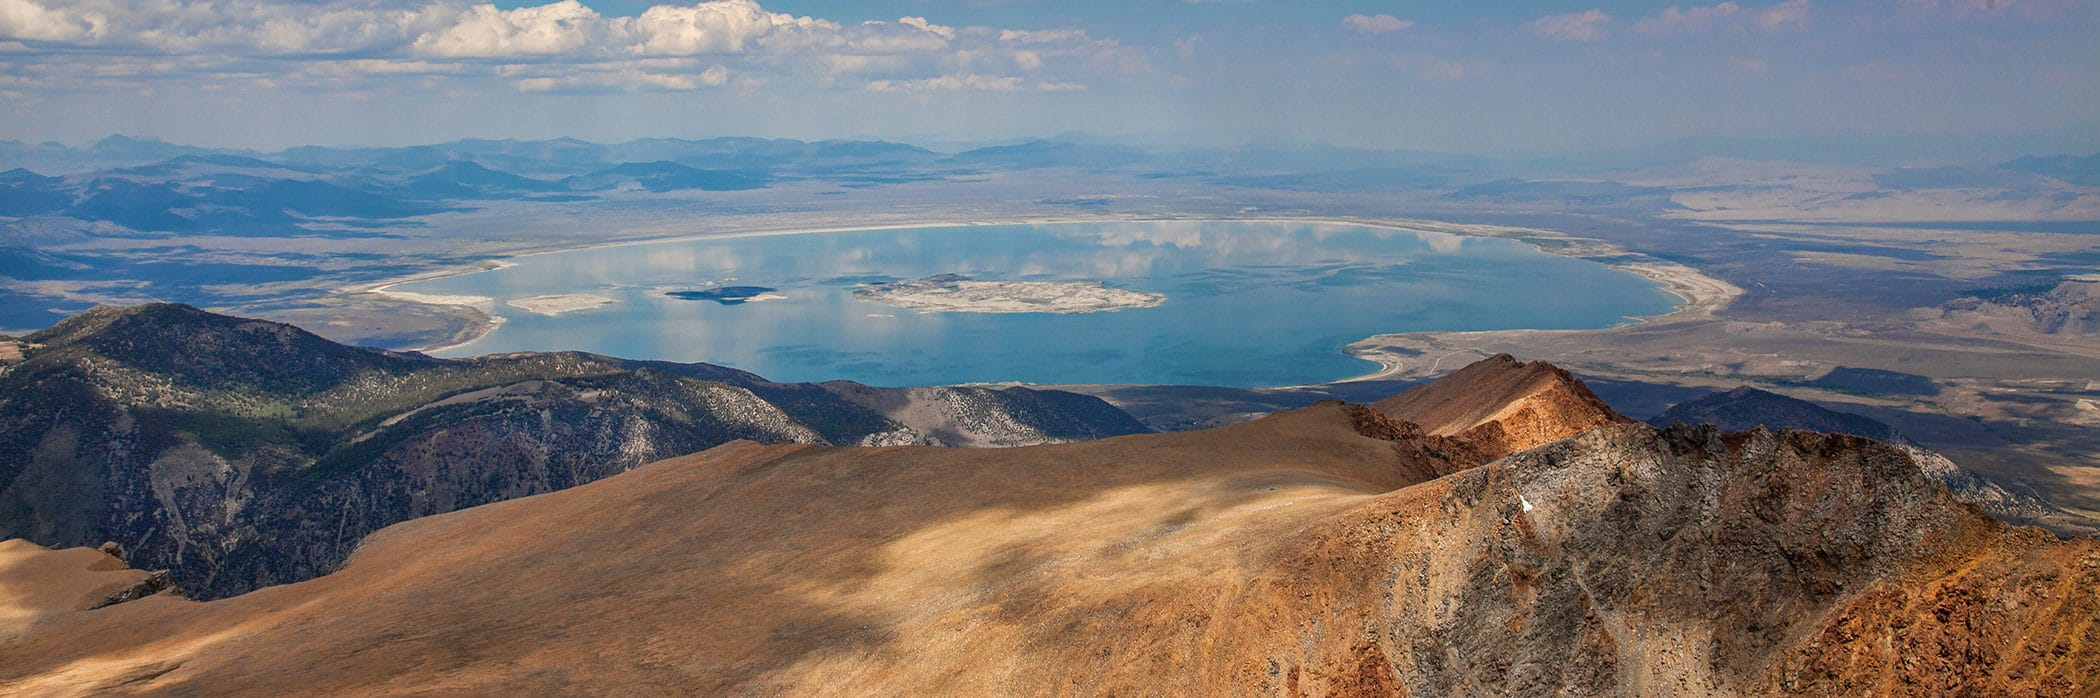 View of almost the entire Mono Lake from a tall mountain peak looking east out over the Mono Basin with Mono Lake's blue glassy reflection of clouds in the sky.